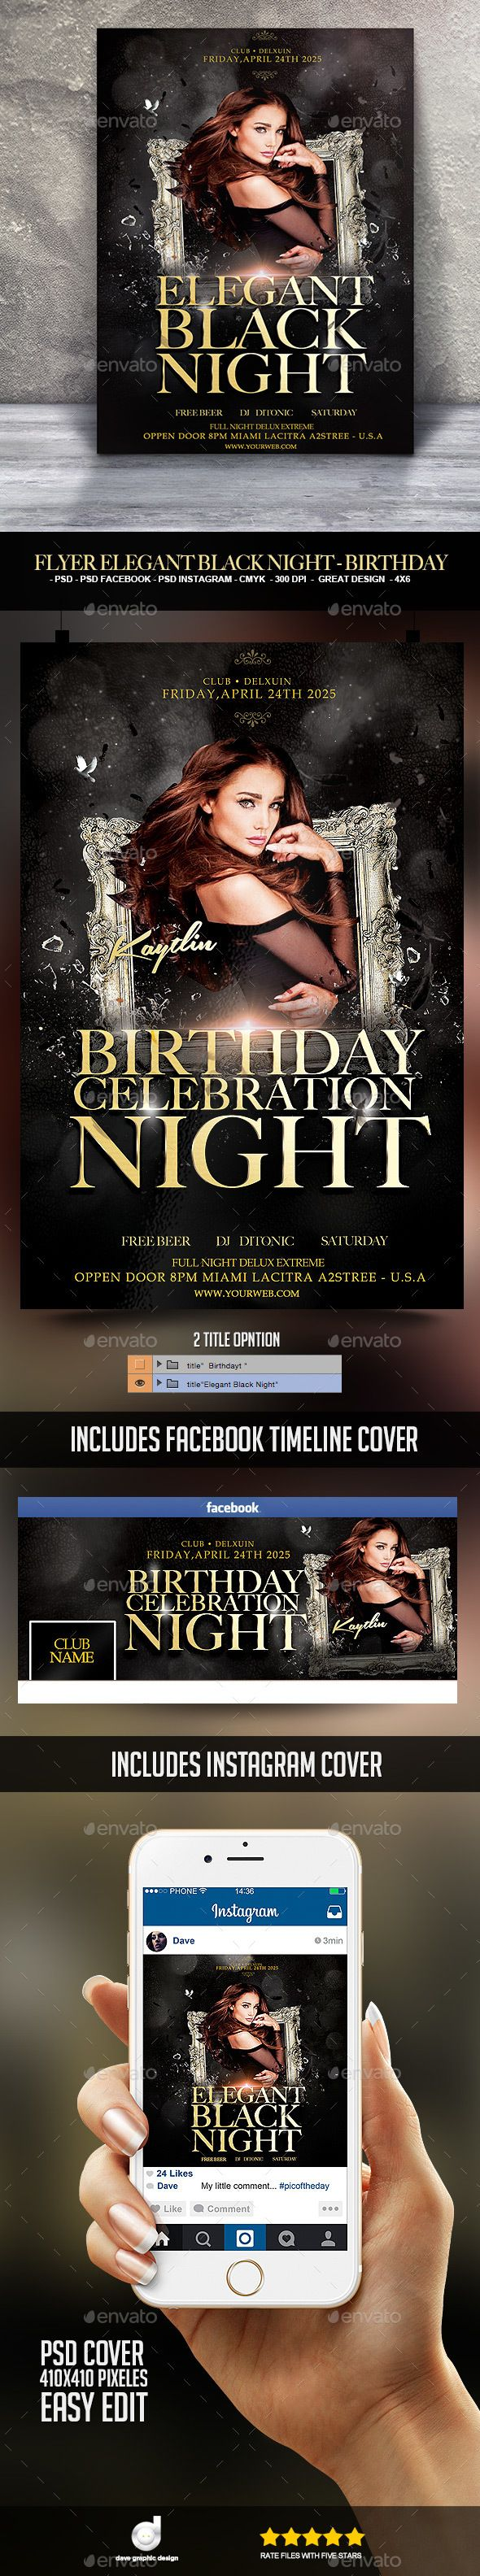 Flyer Elegant Black Night  Birthday  Download Heres And Flyer